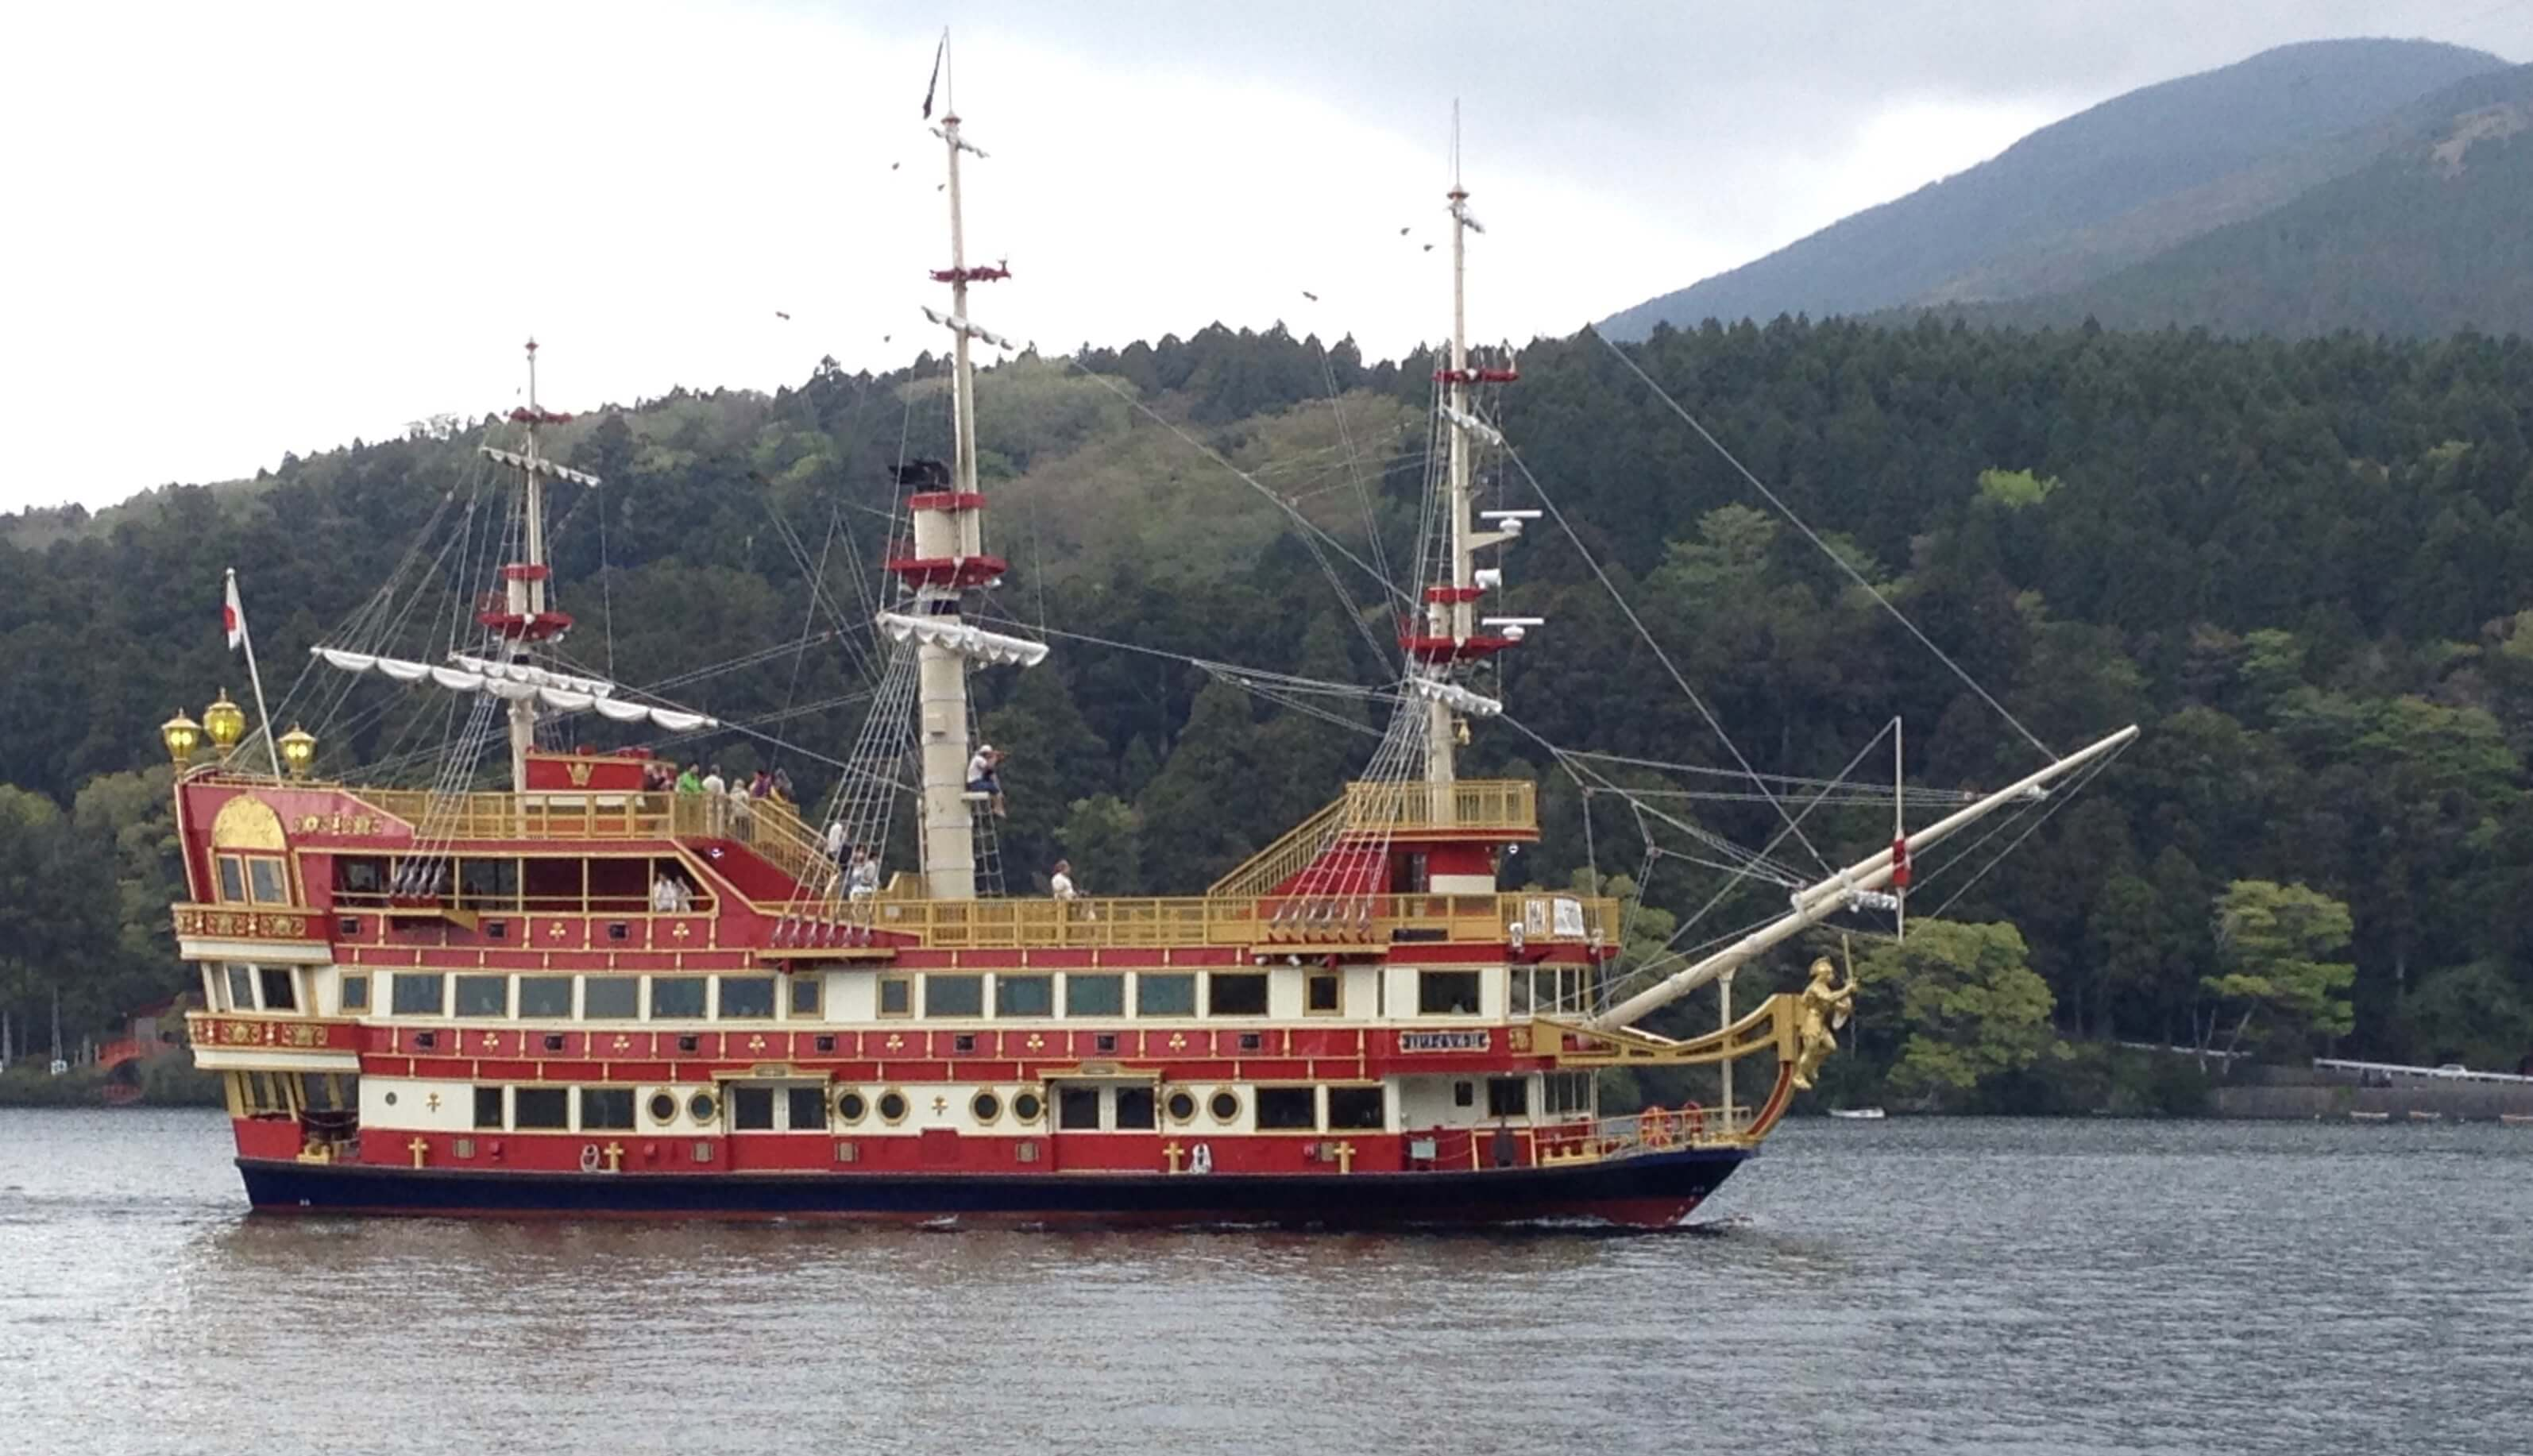 Sightseeing boat on the lake in Hakone